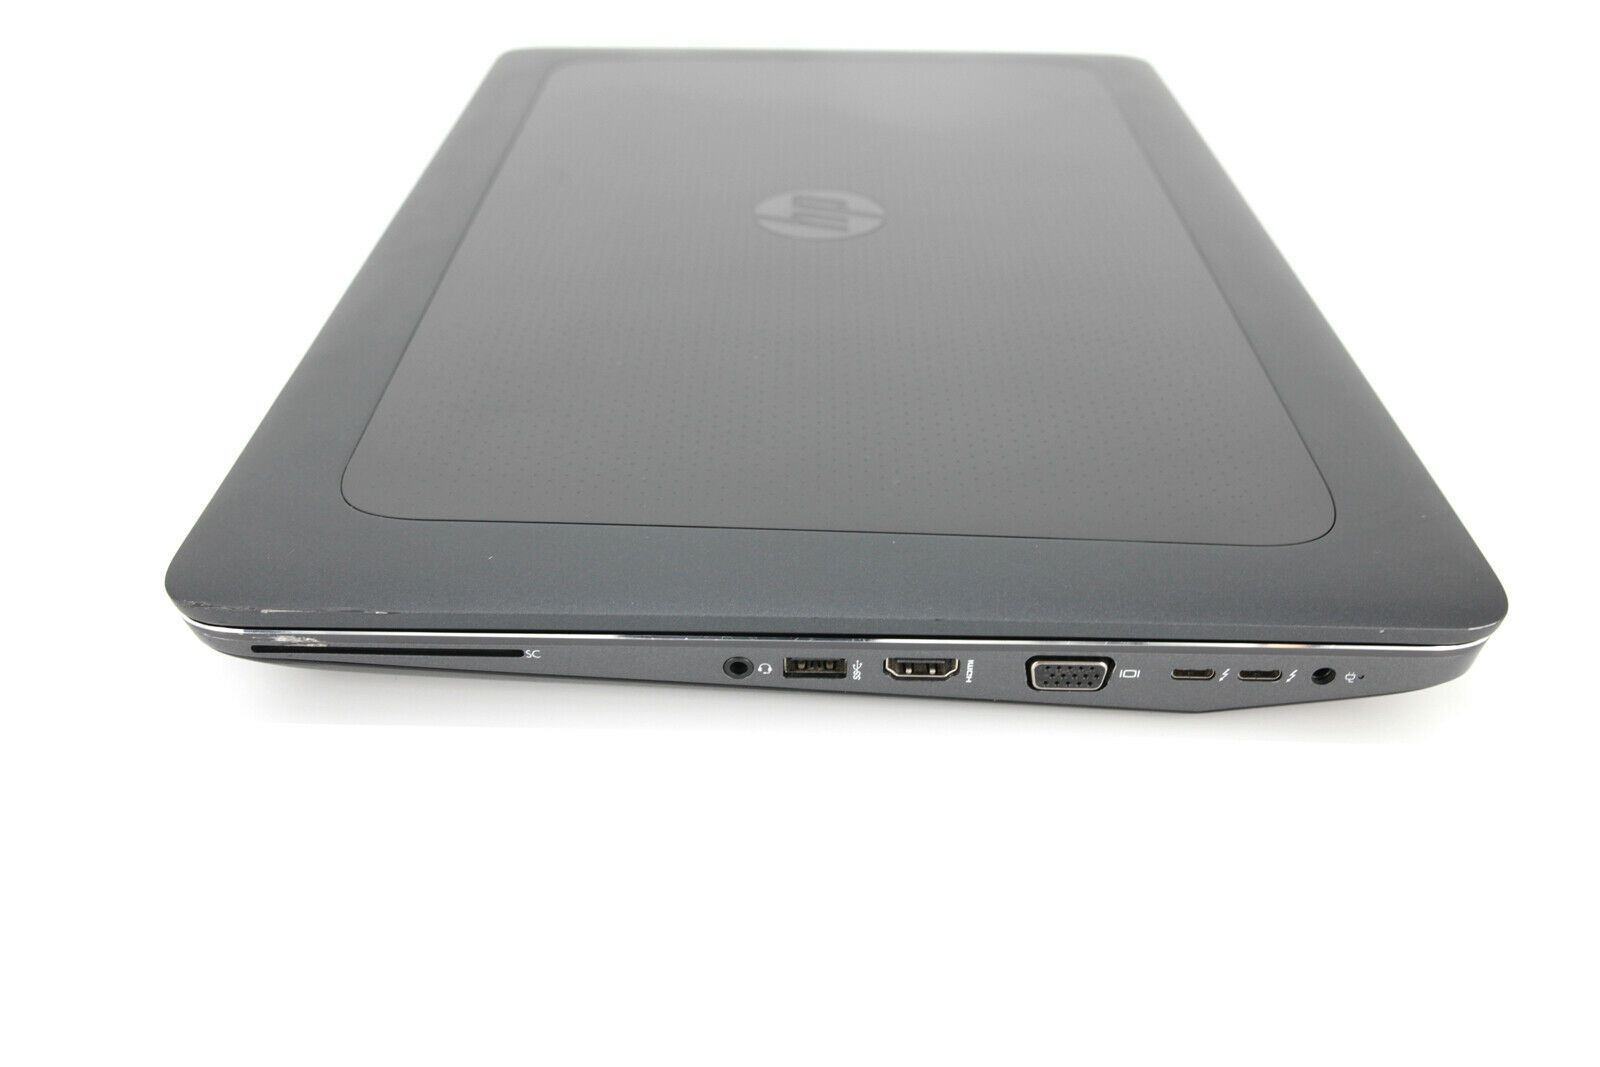 HP ZBook 17 G3 CAD Laptop: Core i7-6820HQ M4000M 16GB RAM 240GB+HDD Warranty VAT - CruiseTech